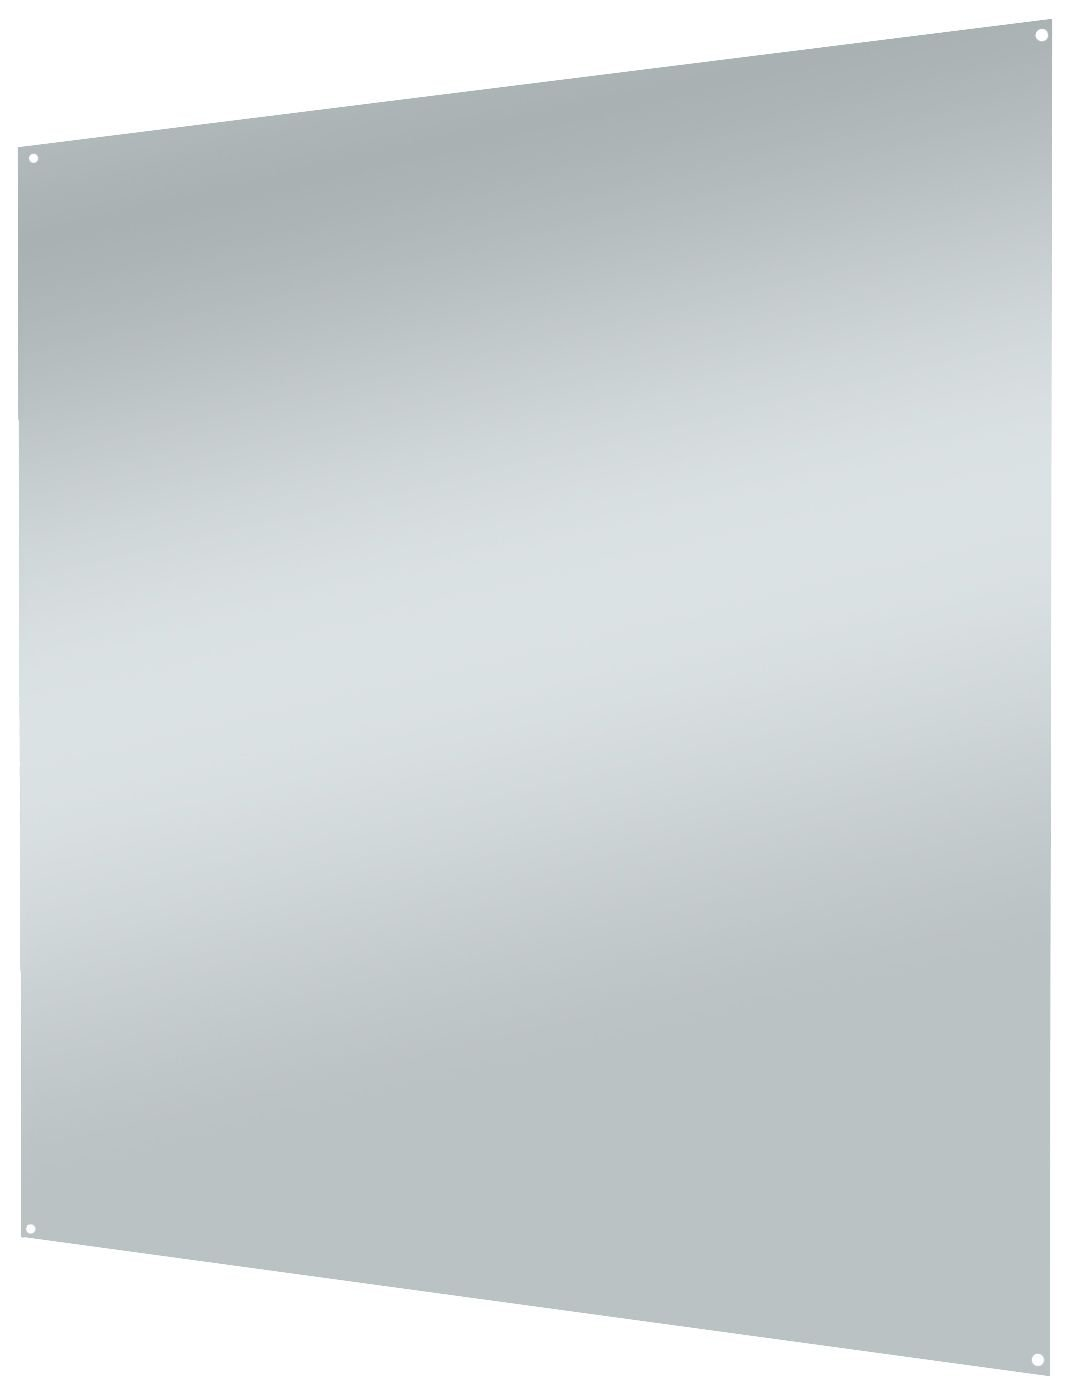 Air King SP2424S Range Hood Back Splash, 24-Inch by 24-Inch, Stainless Steel Finish